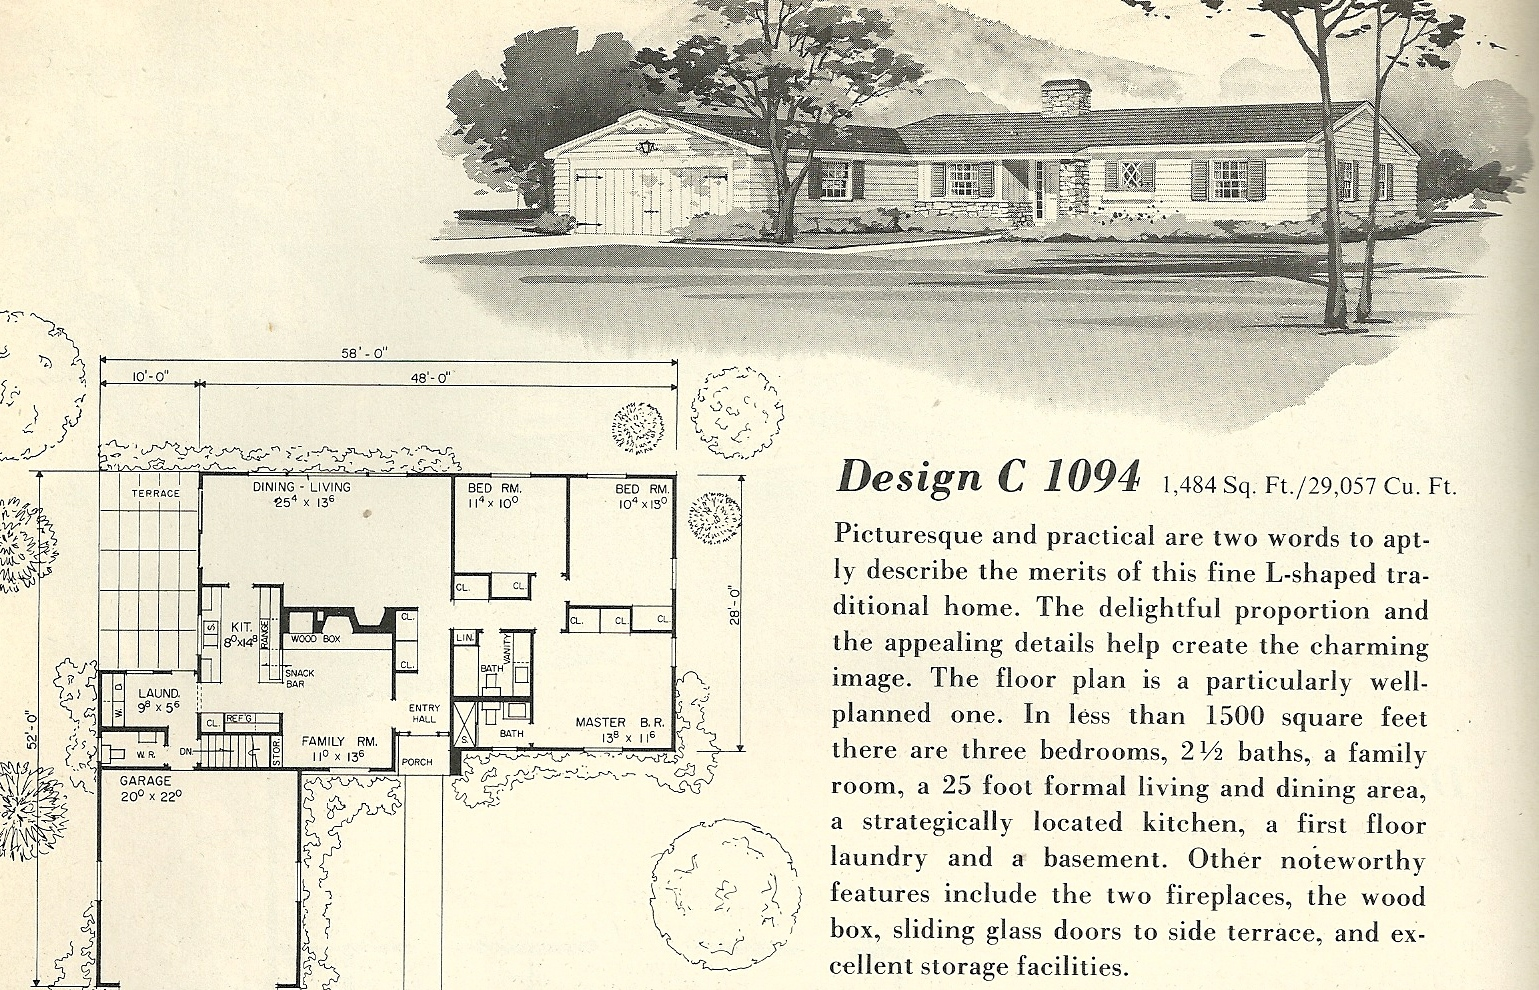 Vintage house plans 1094 antique alter ego for Vintage home plans